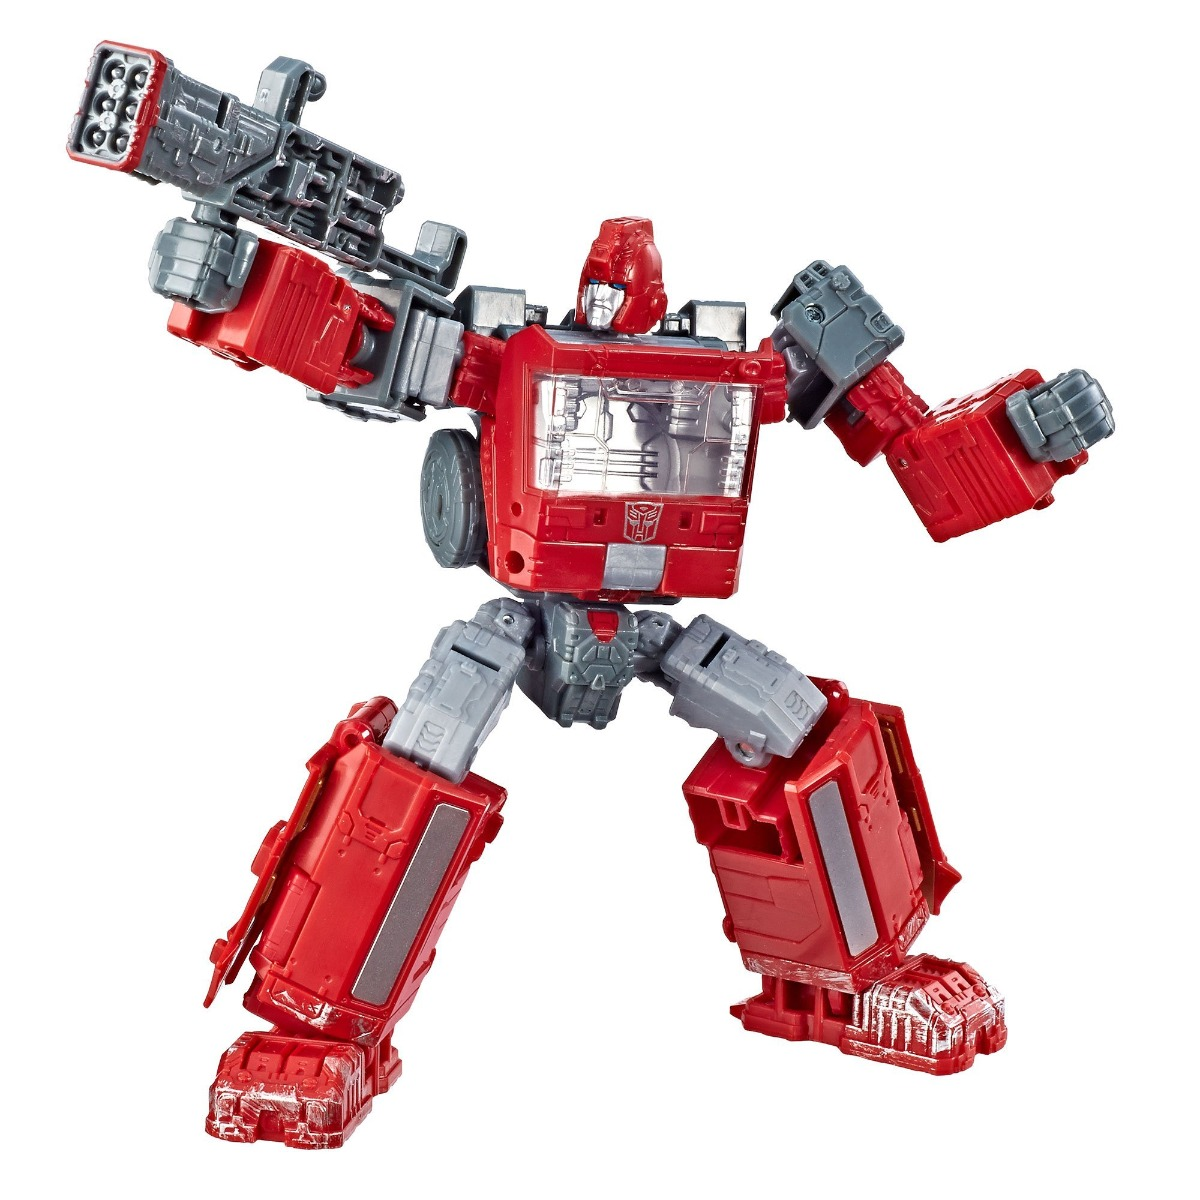 Figurina Transformers Deluxe War for Cybertron, Ironhide, E3538